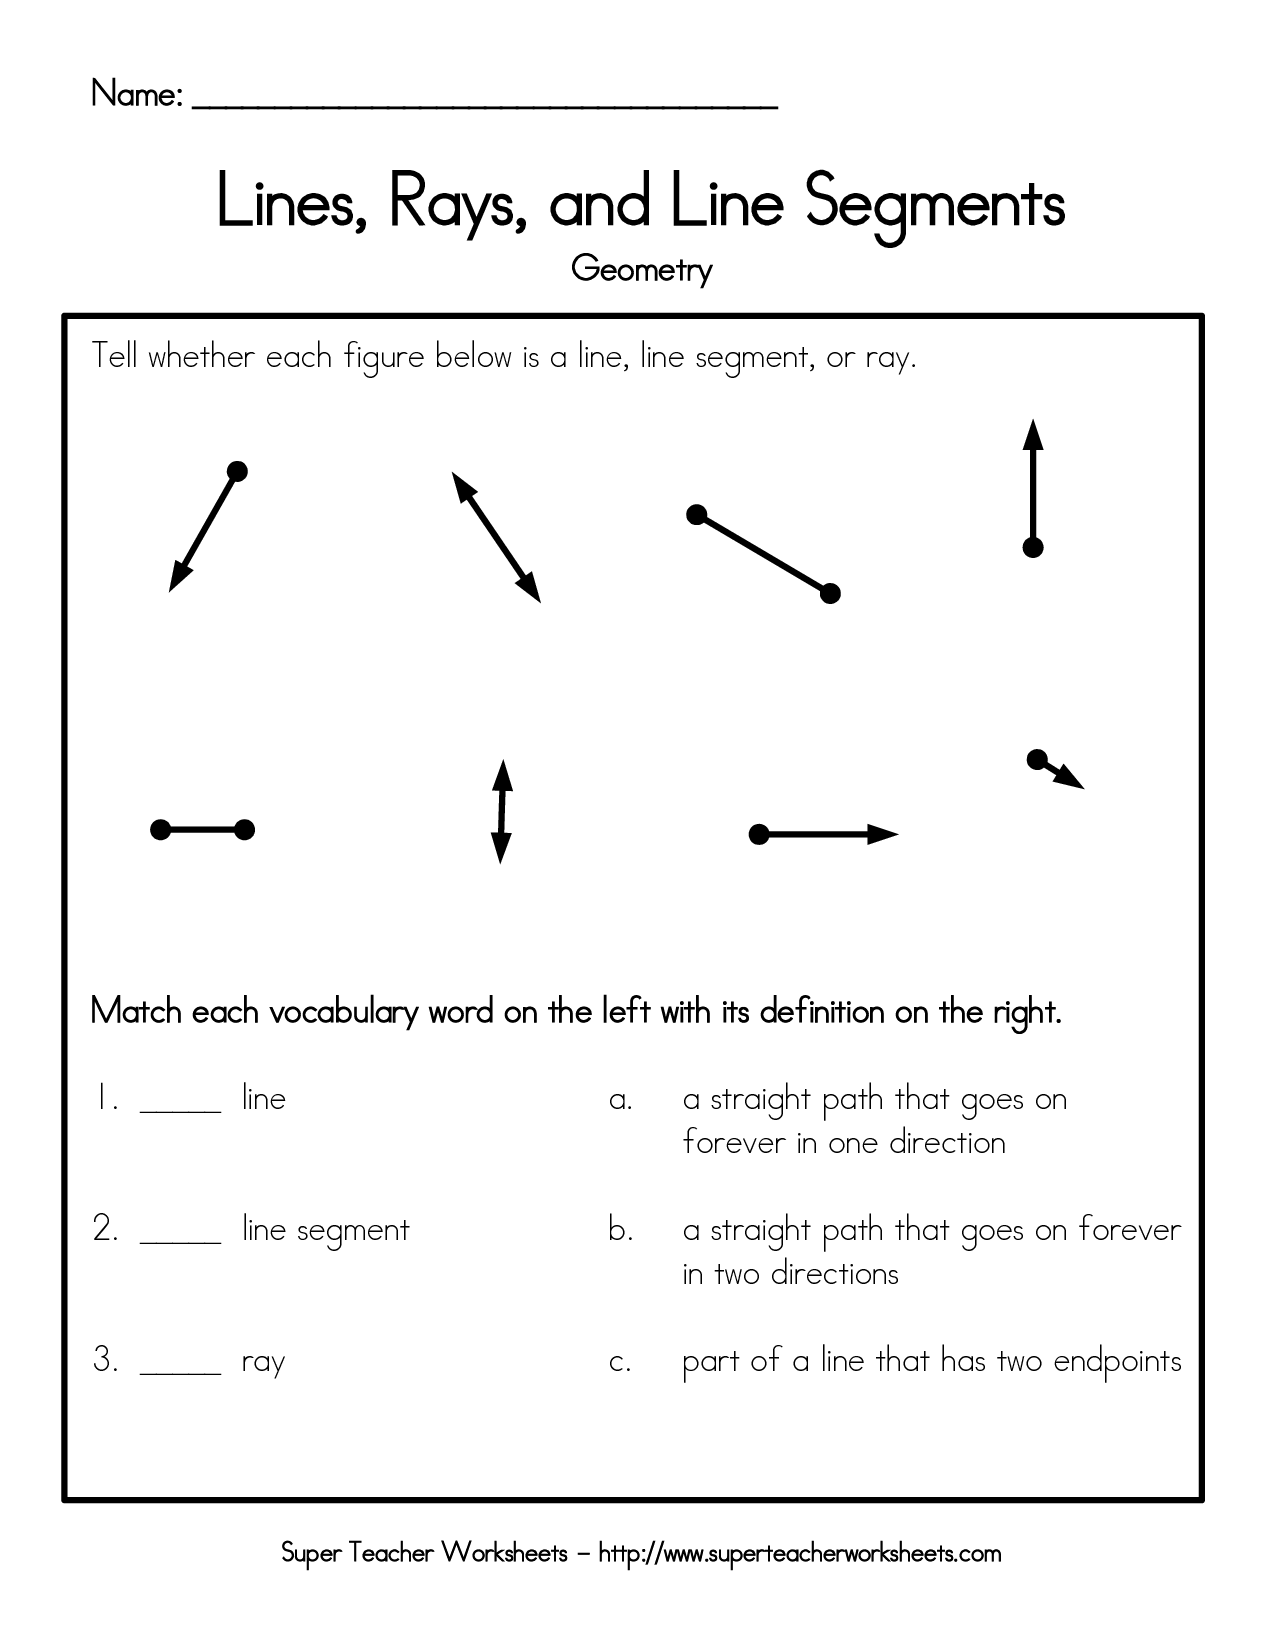 worksheet Lines And Angles Worksheet lines rays and line segments worksheet name geometry tell whether